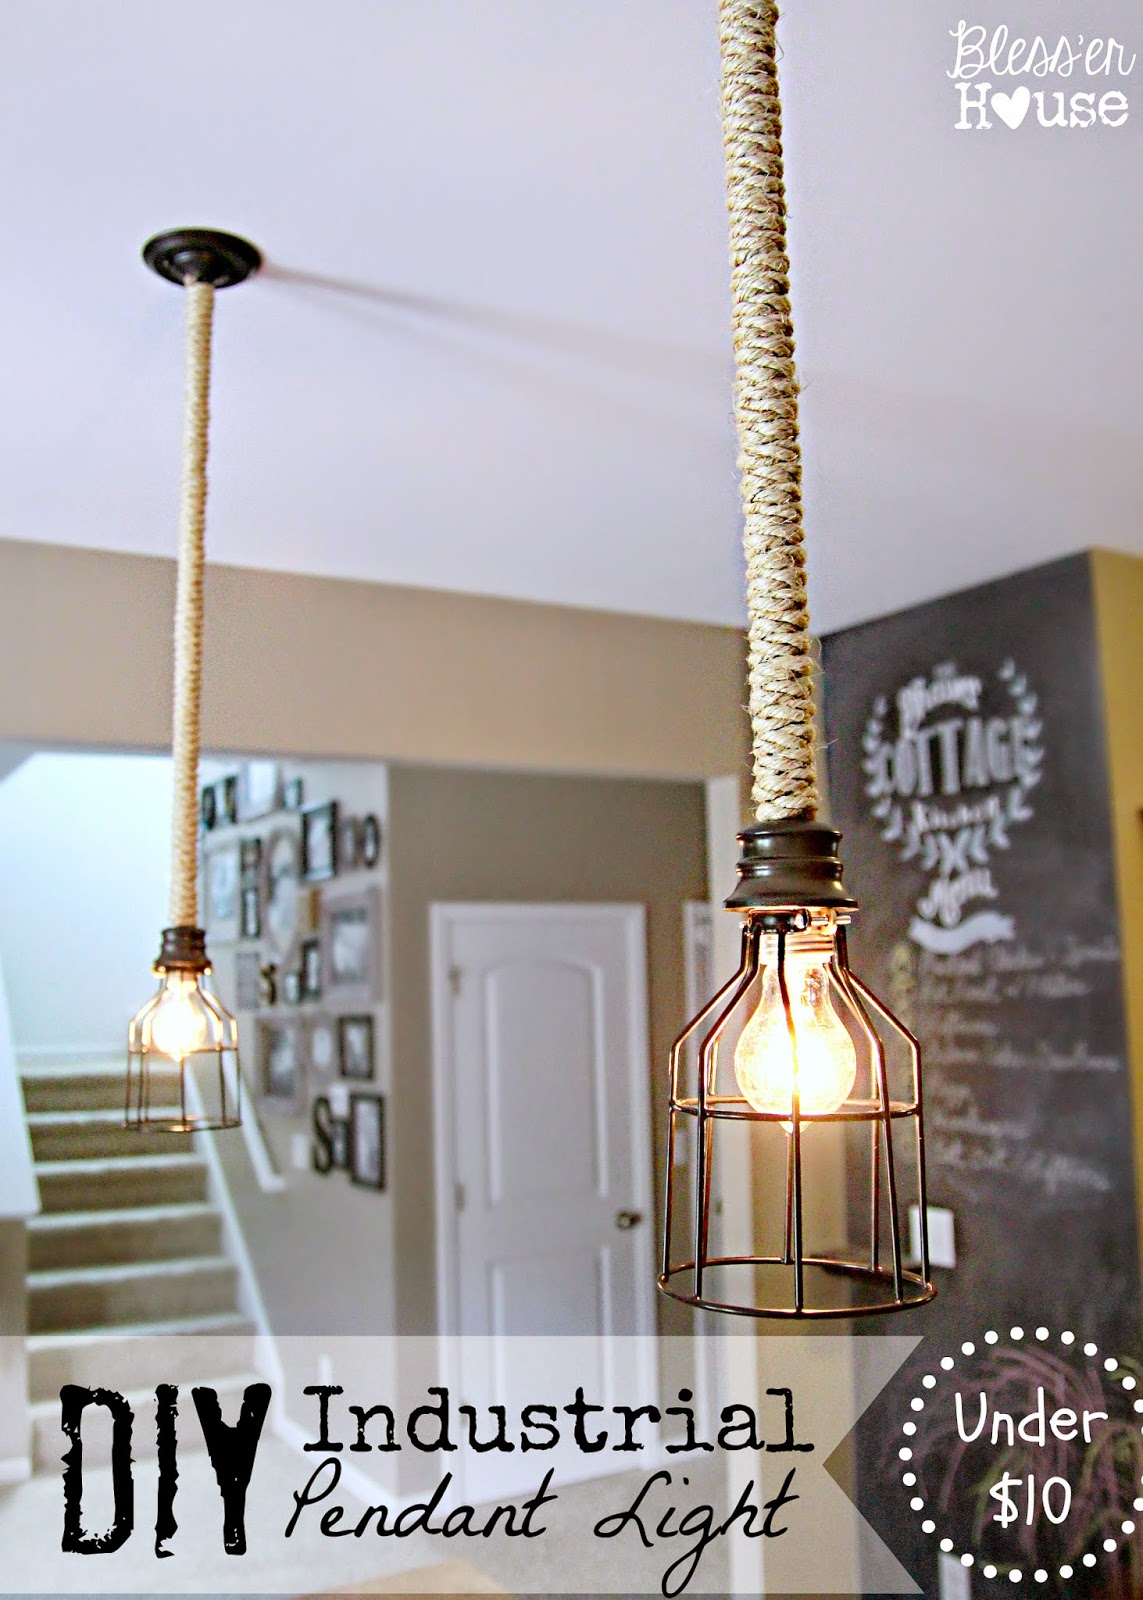 indoor bedroom dining creative product kitchen room lamps lighting pendant bathroom rope restaurant vintage lamp tire chandelier lights